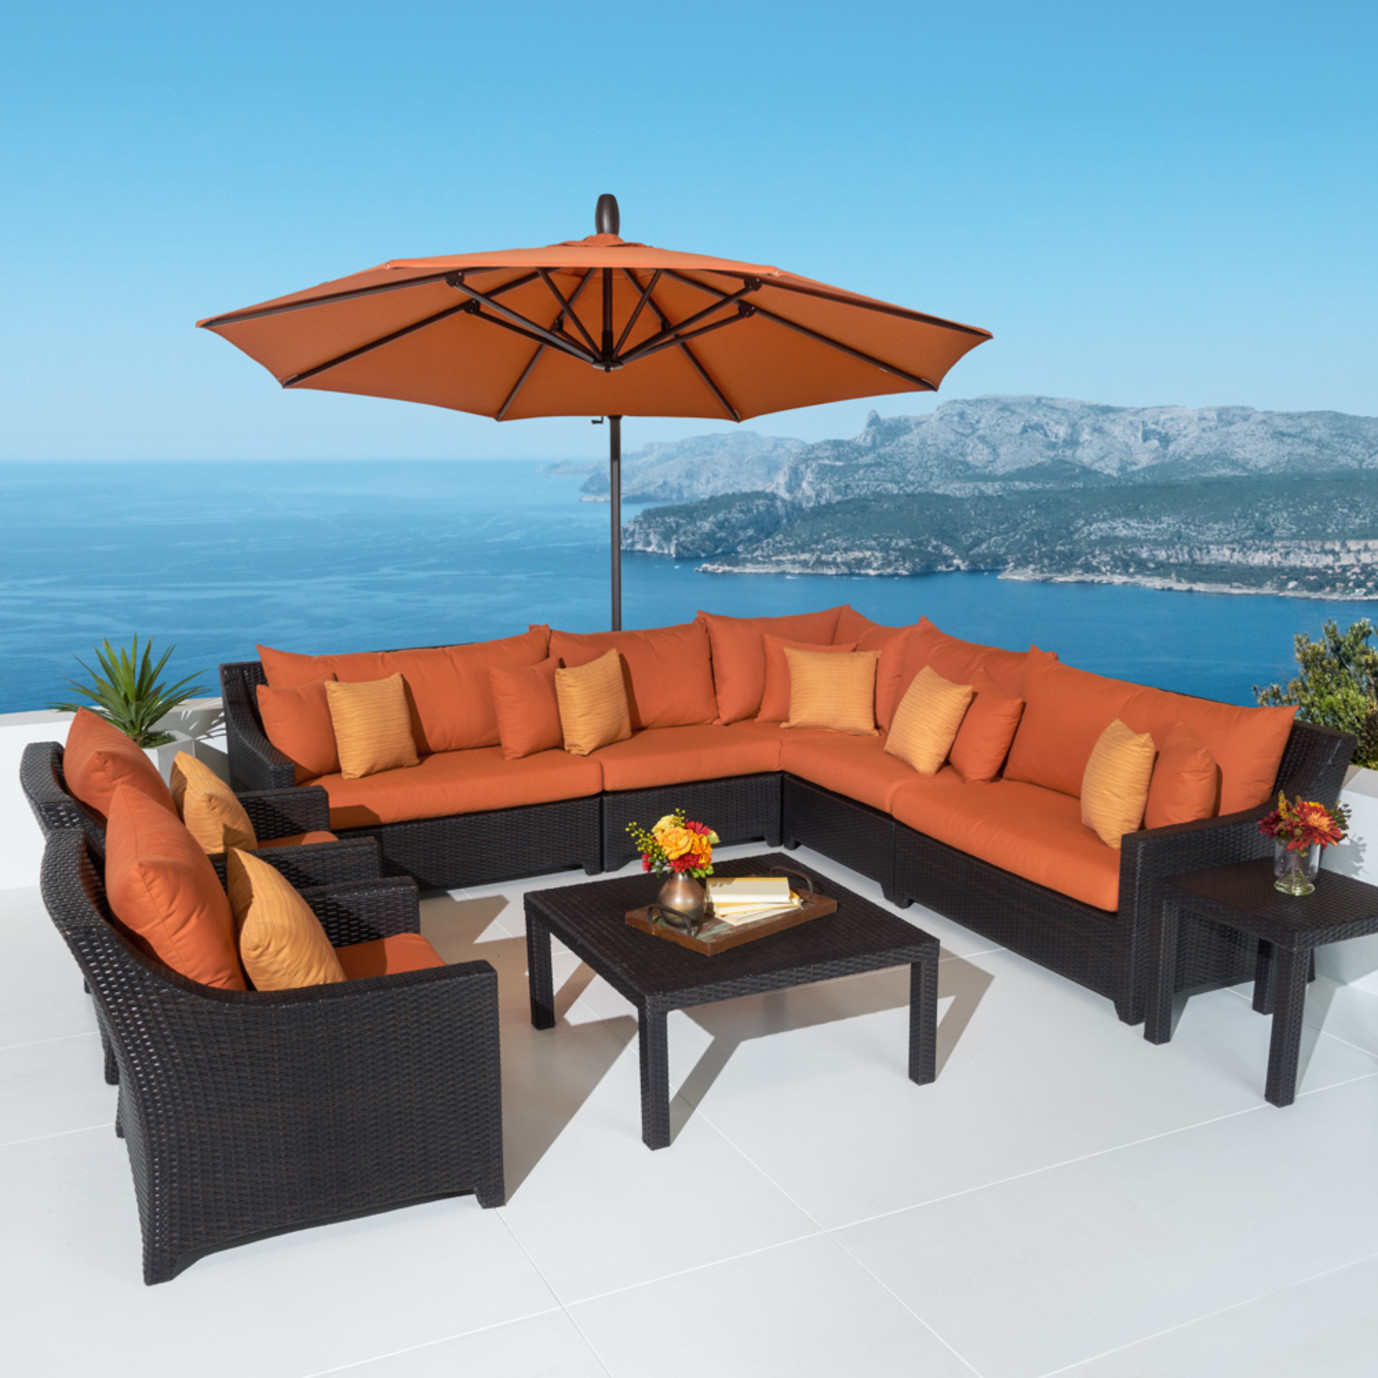 Deco™ 9 Piece Sectional and Club Set with Shade - Tikka Orange